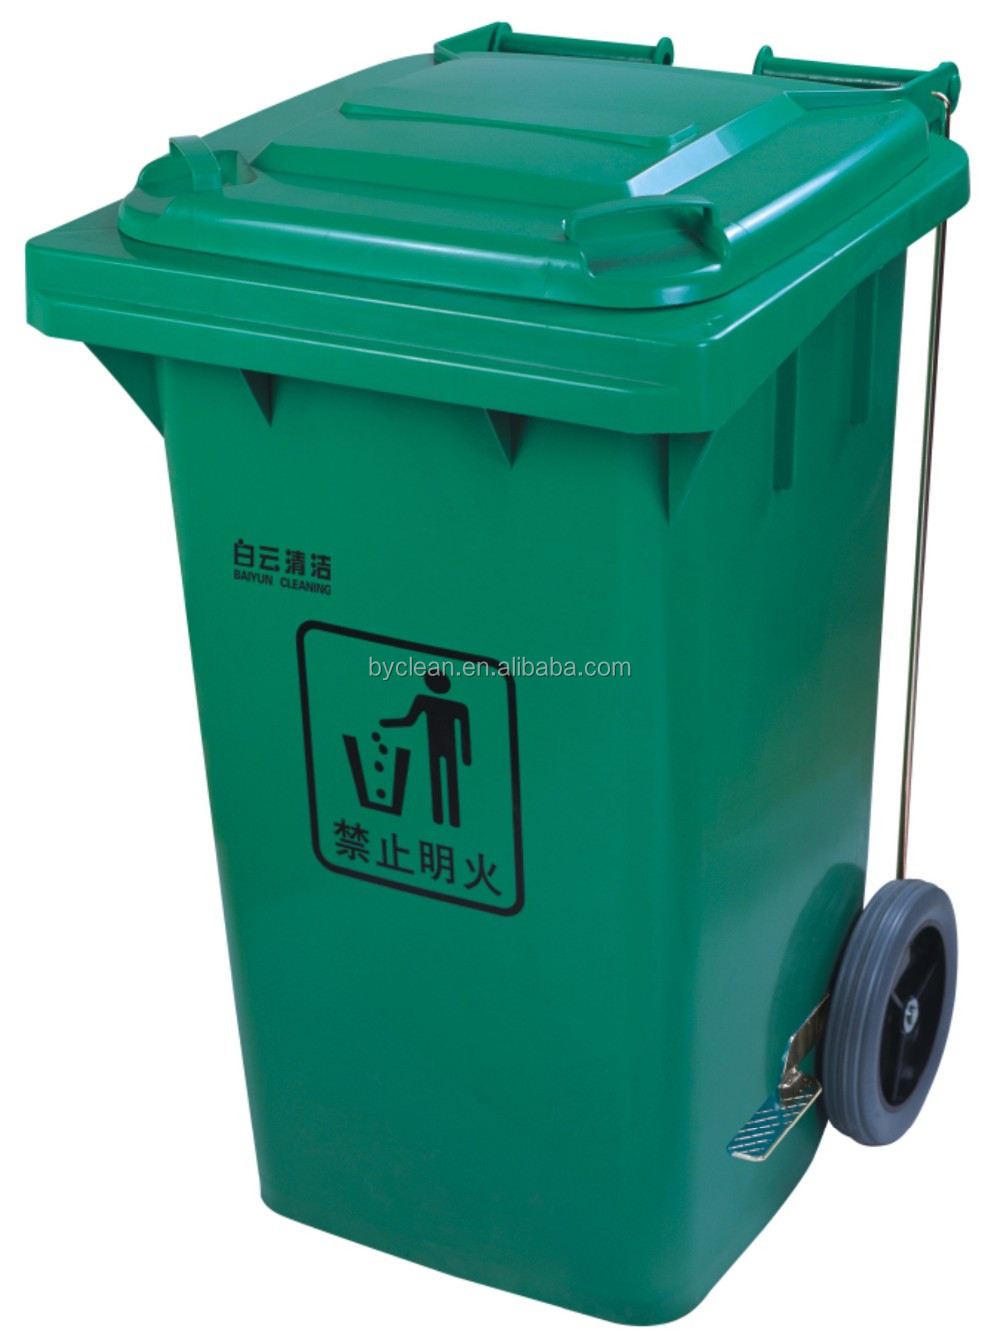 2016 outdoor plastic kitchen dustbin 120 liter trash can eco ...